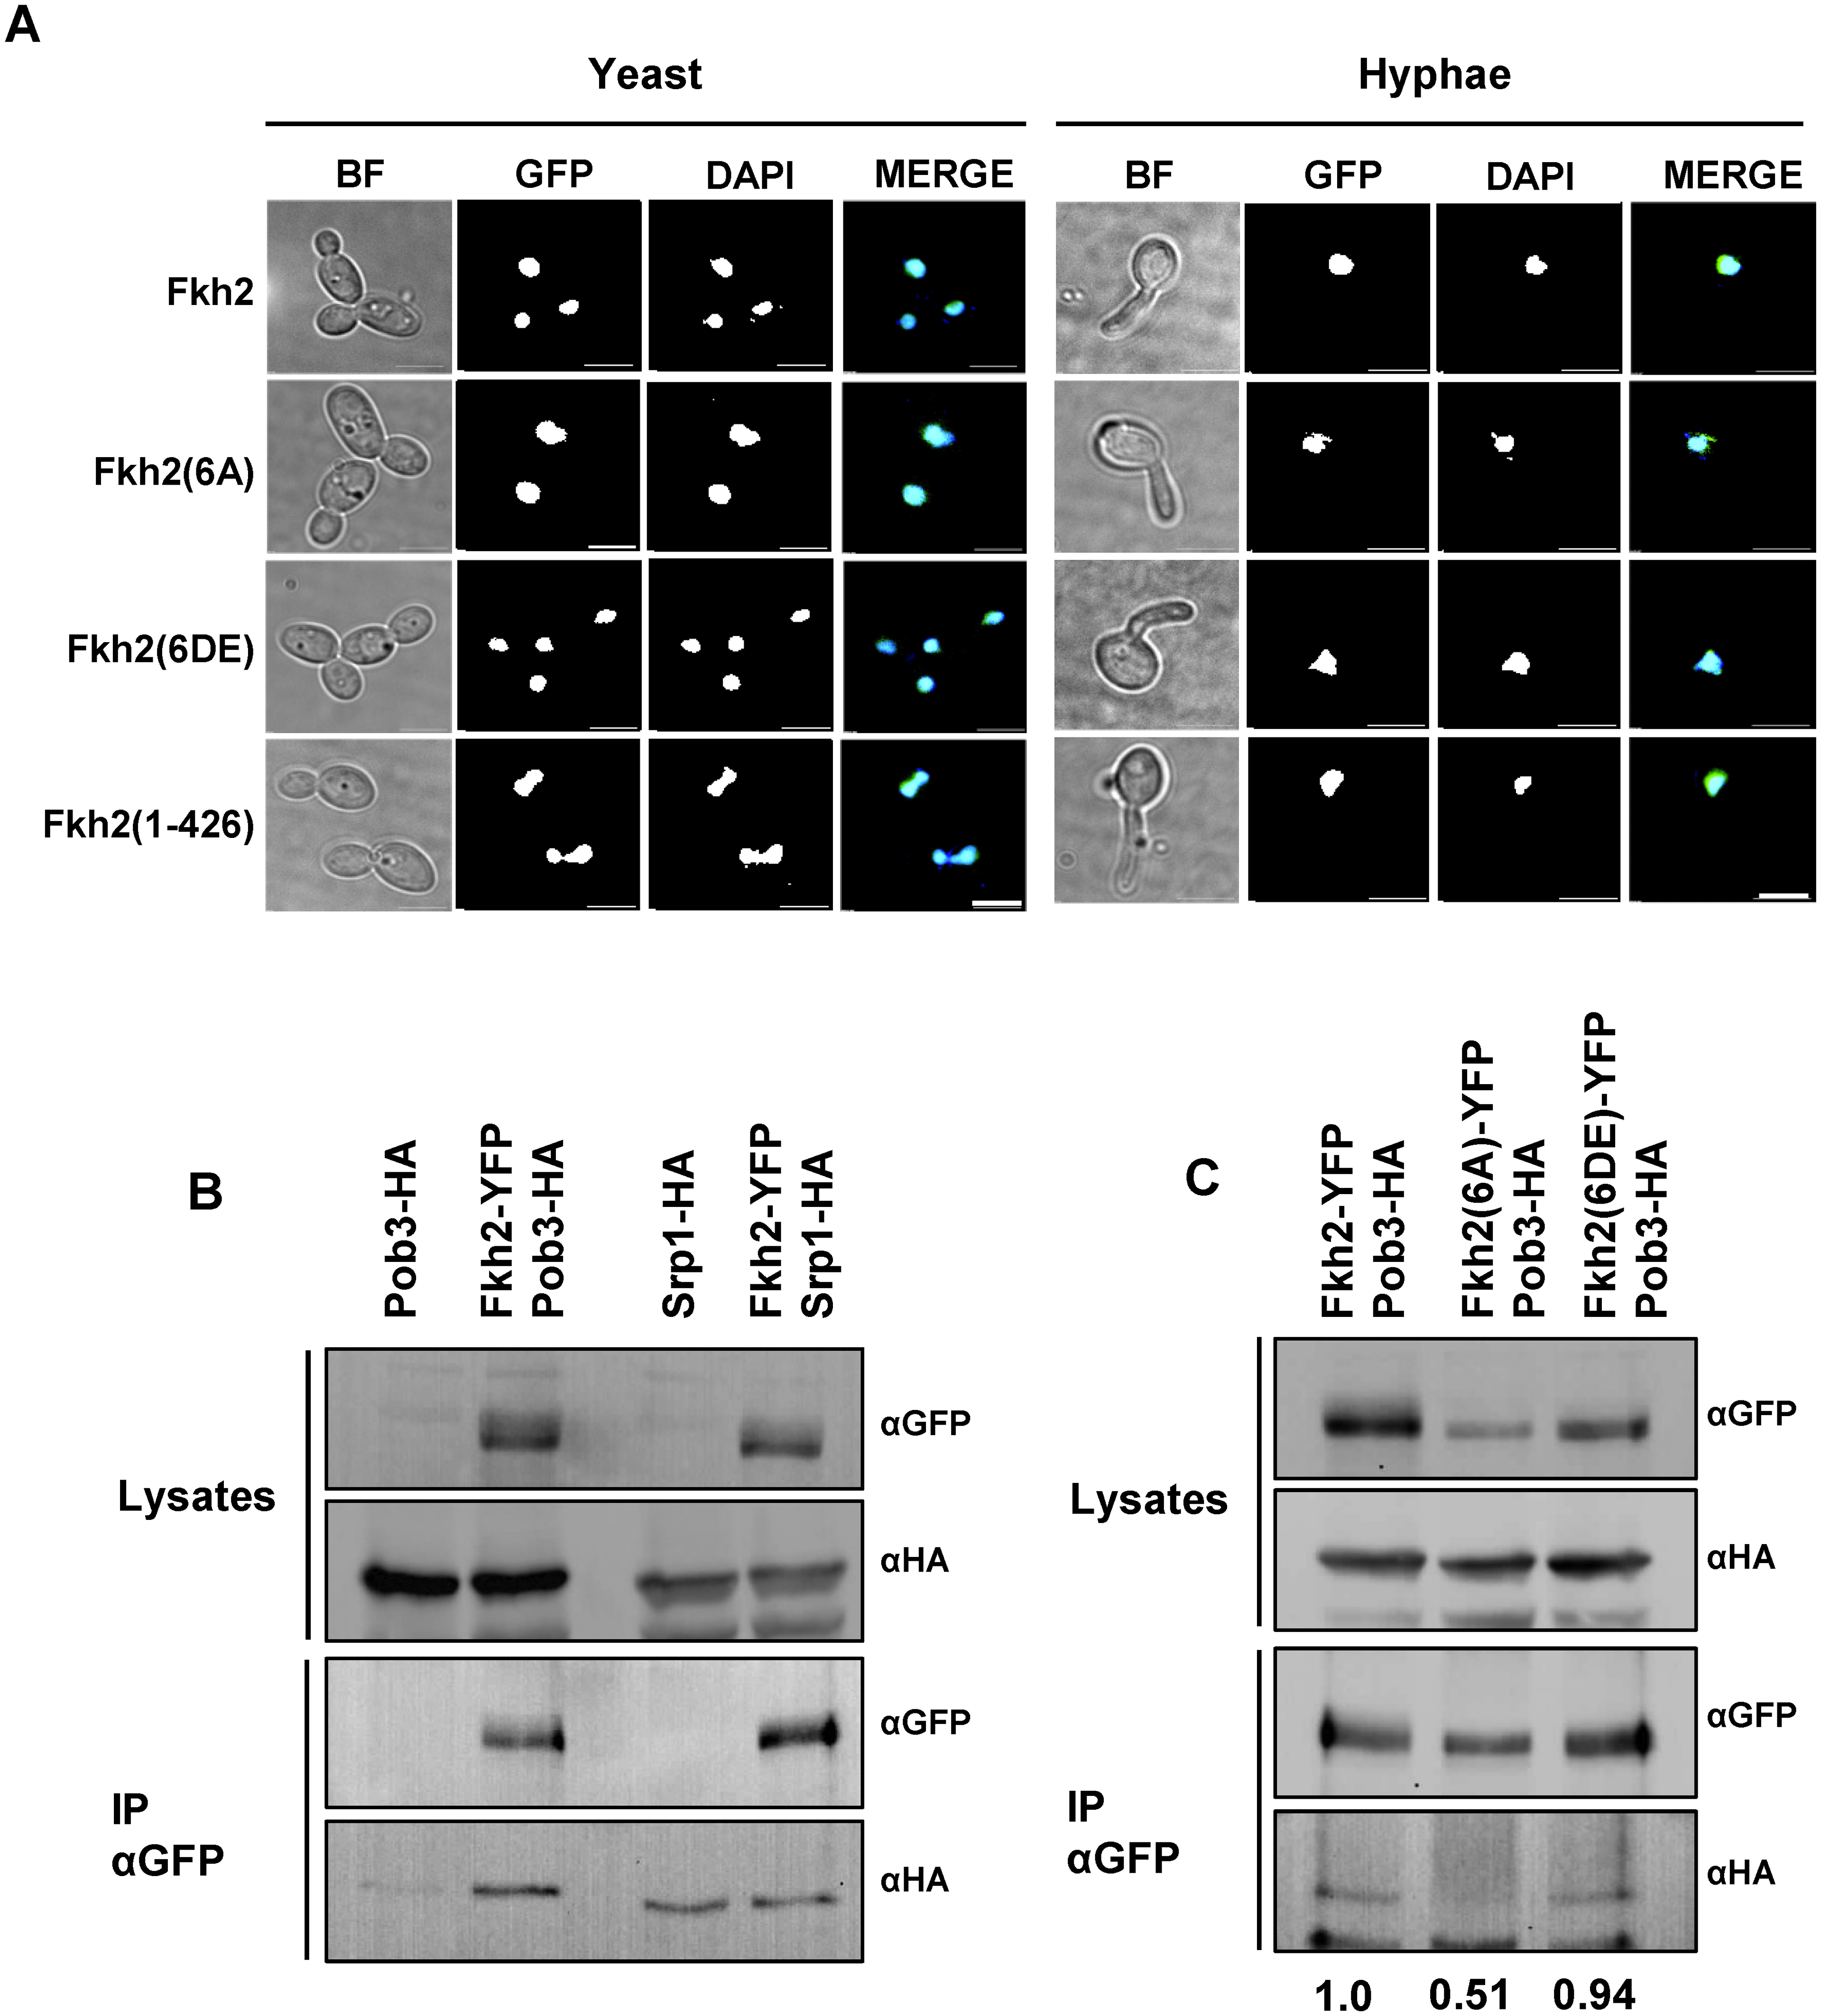 Phosphorylation of Fkh2 does not alter its localisation, but affects its interaction with the chromatin modifier Pob3.